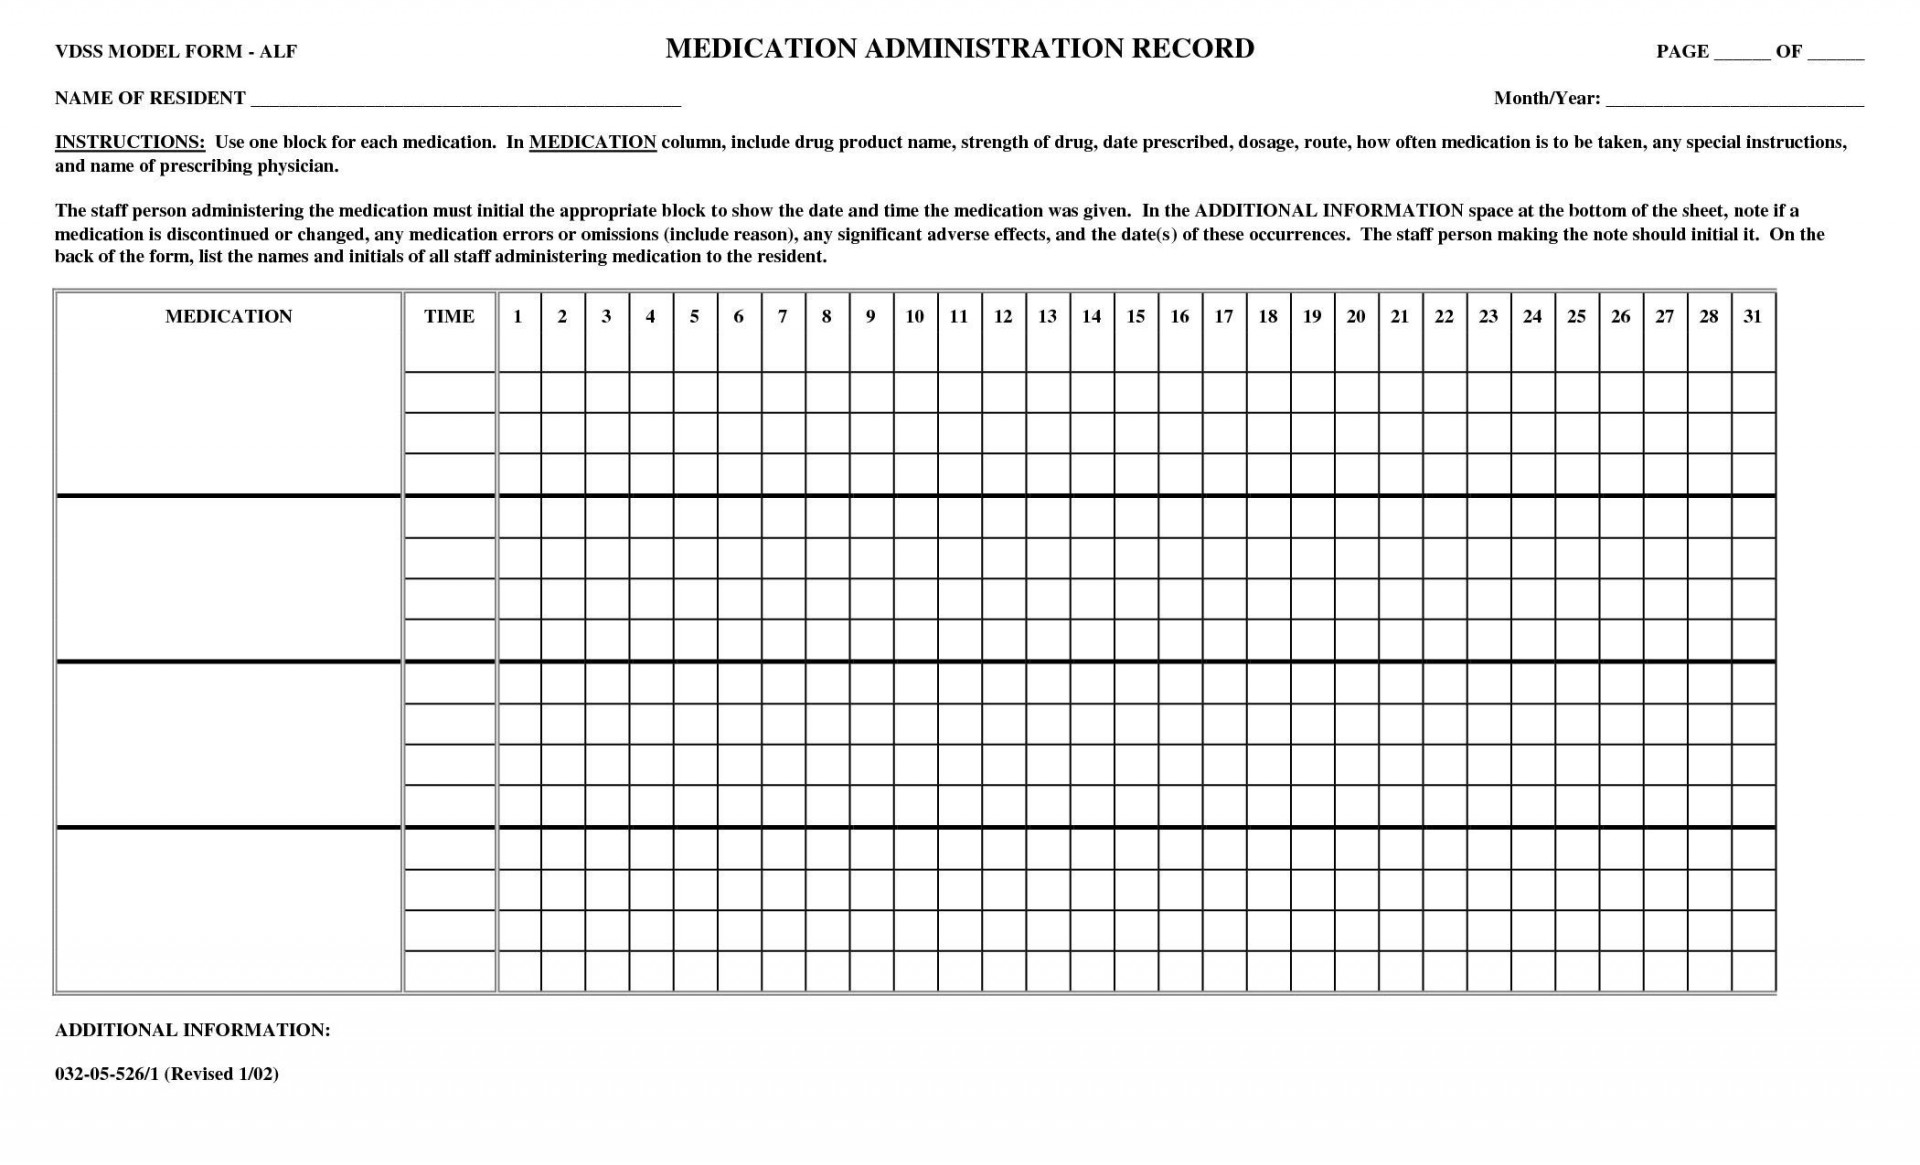 008 Outstanding Monthly Medication Administration Record Template Excel Photo 1920